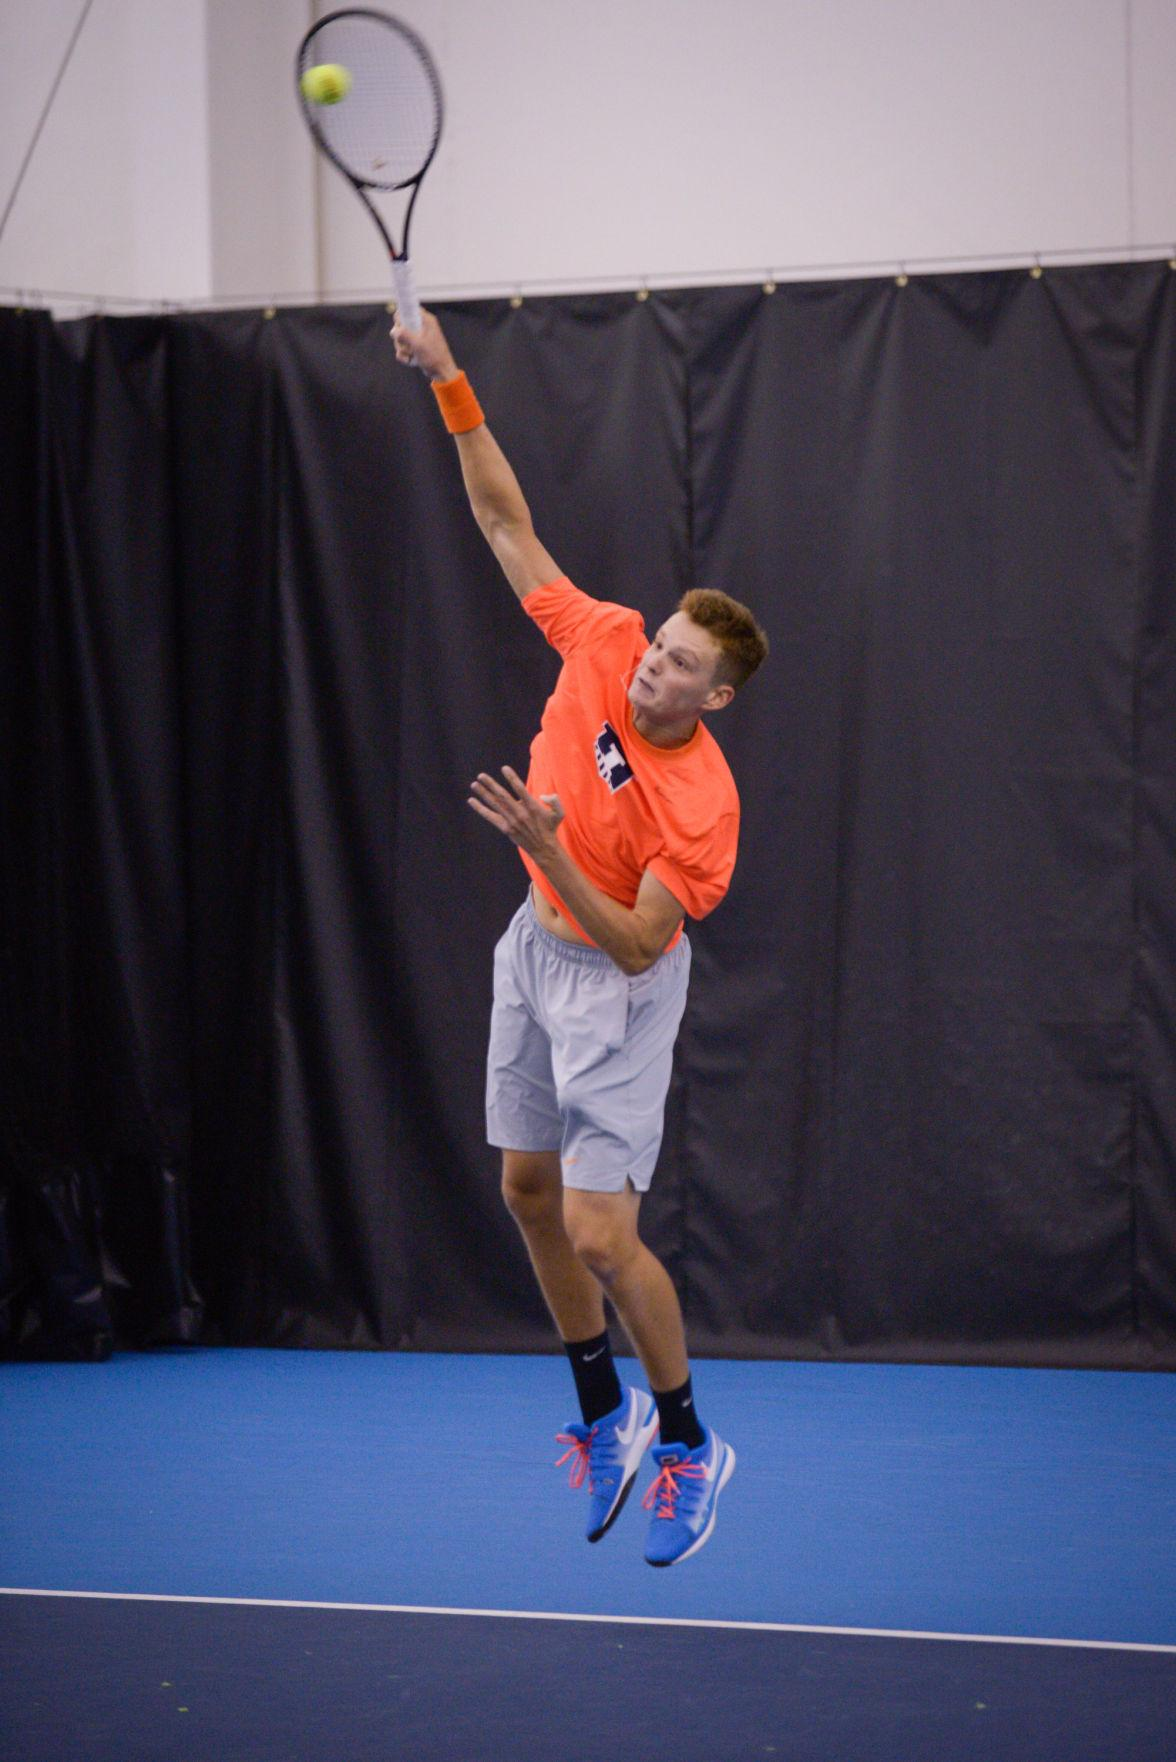 Illinois' Brian Page serves the ball during the match against Kentucky at the Atkins Indoor Center on Feb. 6. The Illini won 7-0.